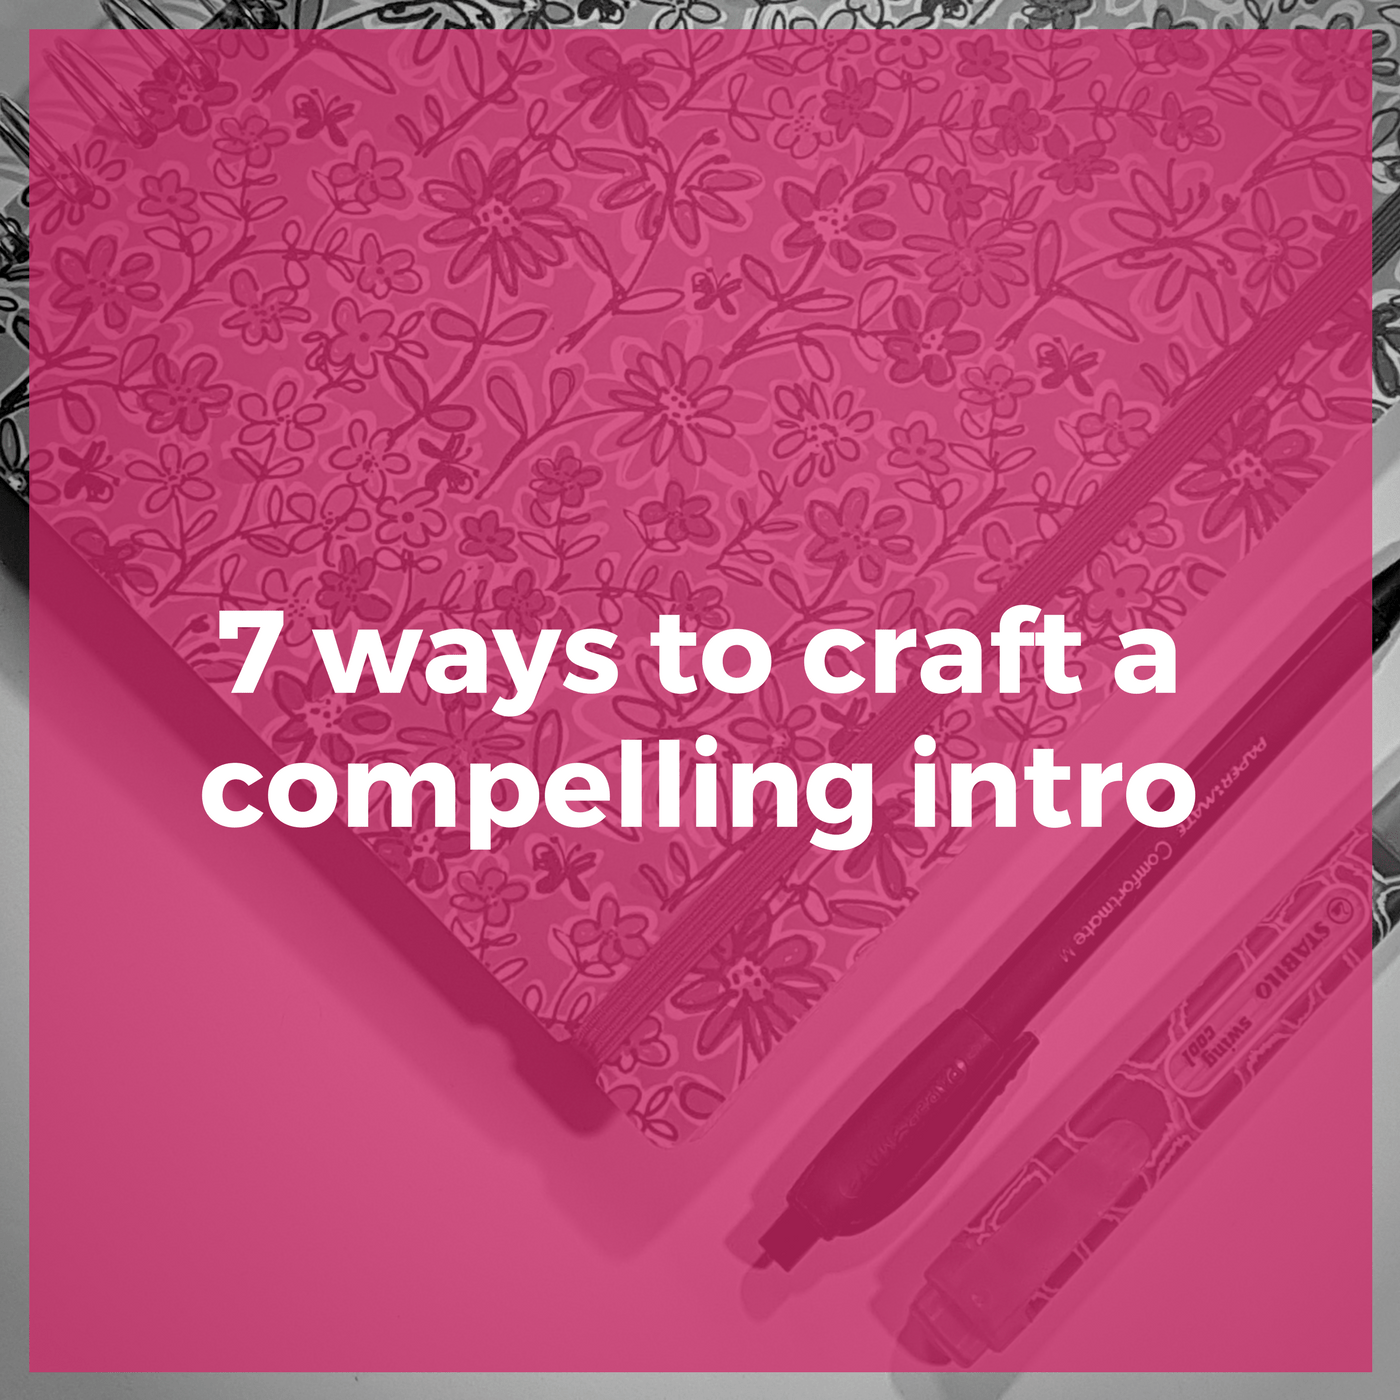 7 ways to craft a compelling intro